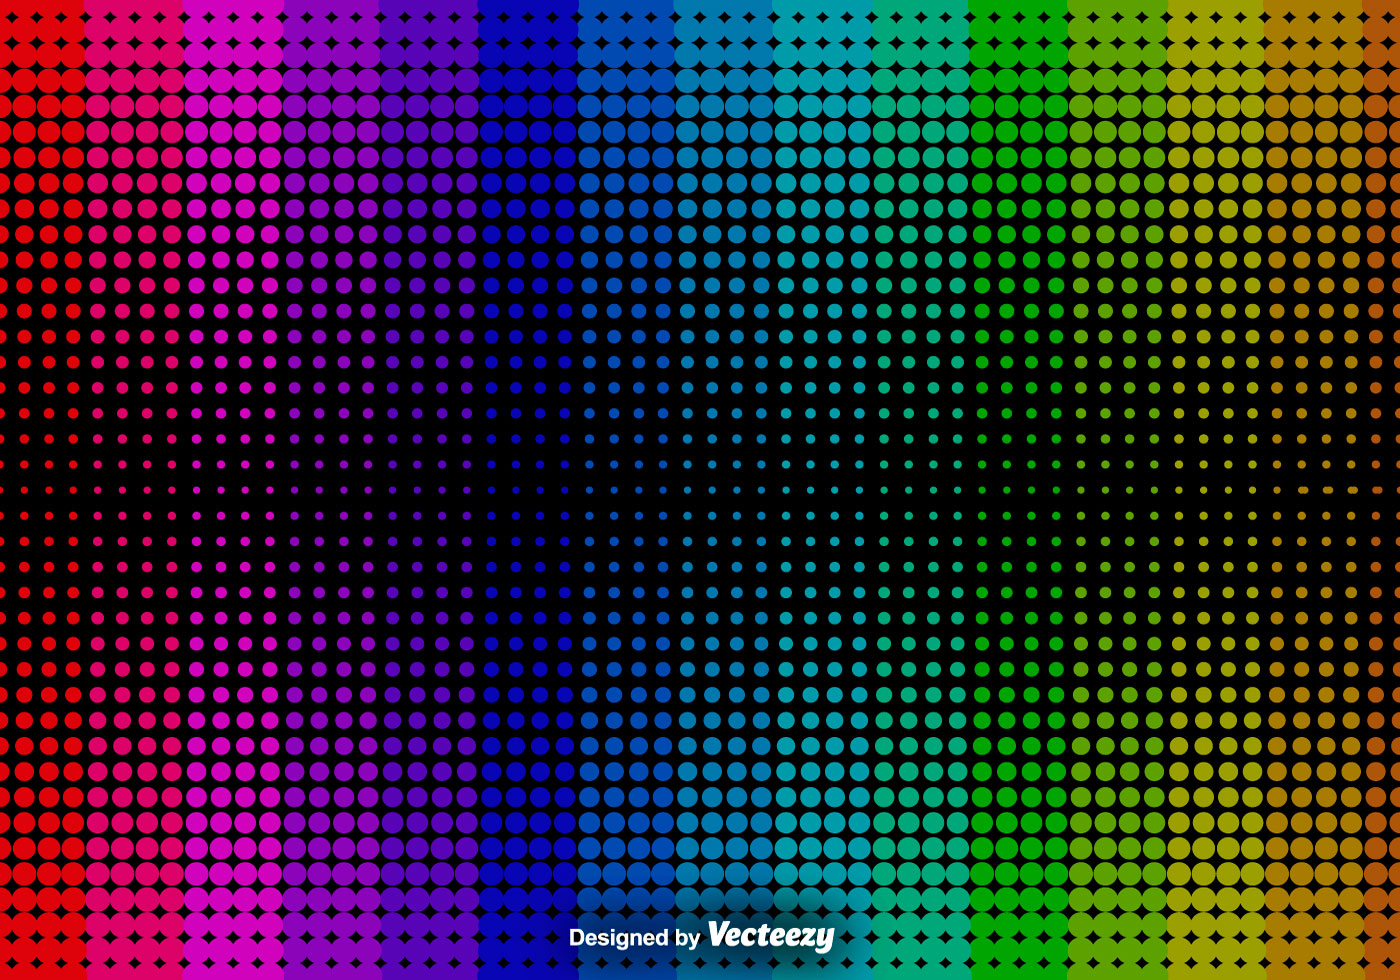 Abstract Halftone Background Vector Background